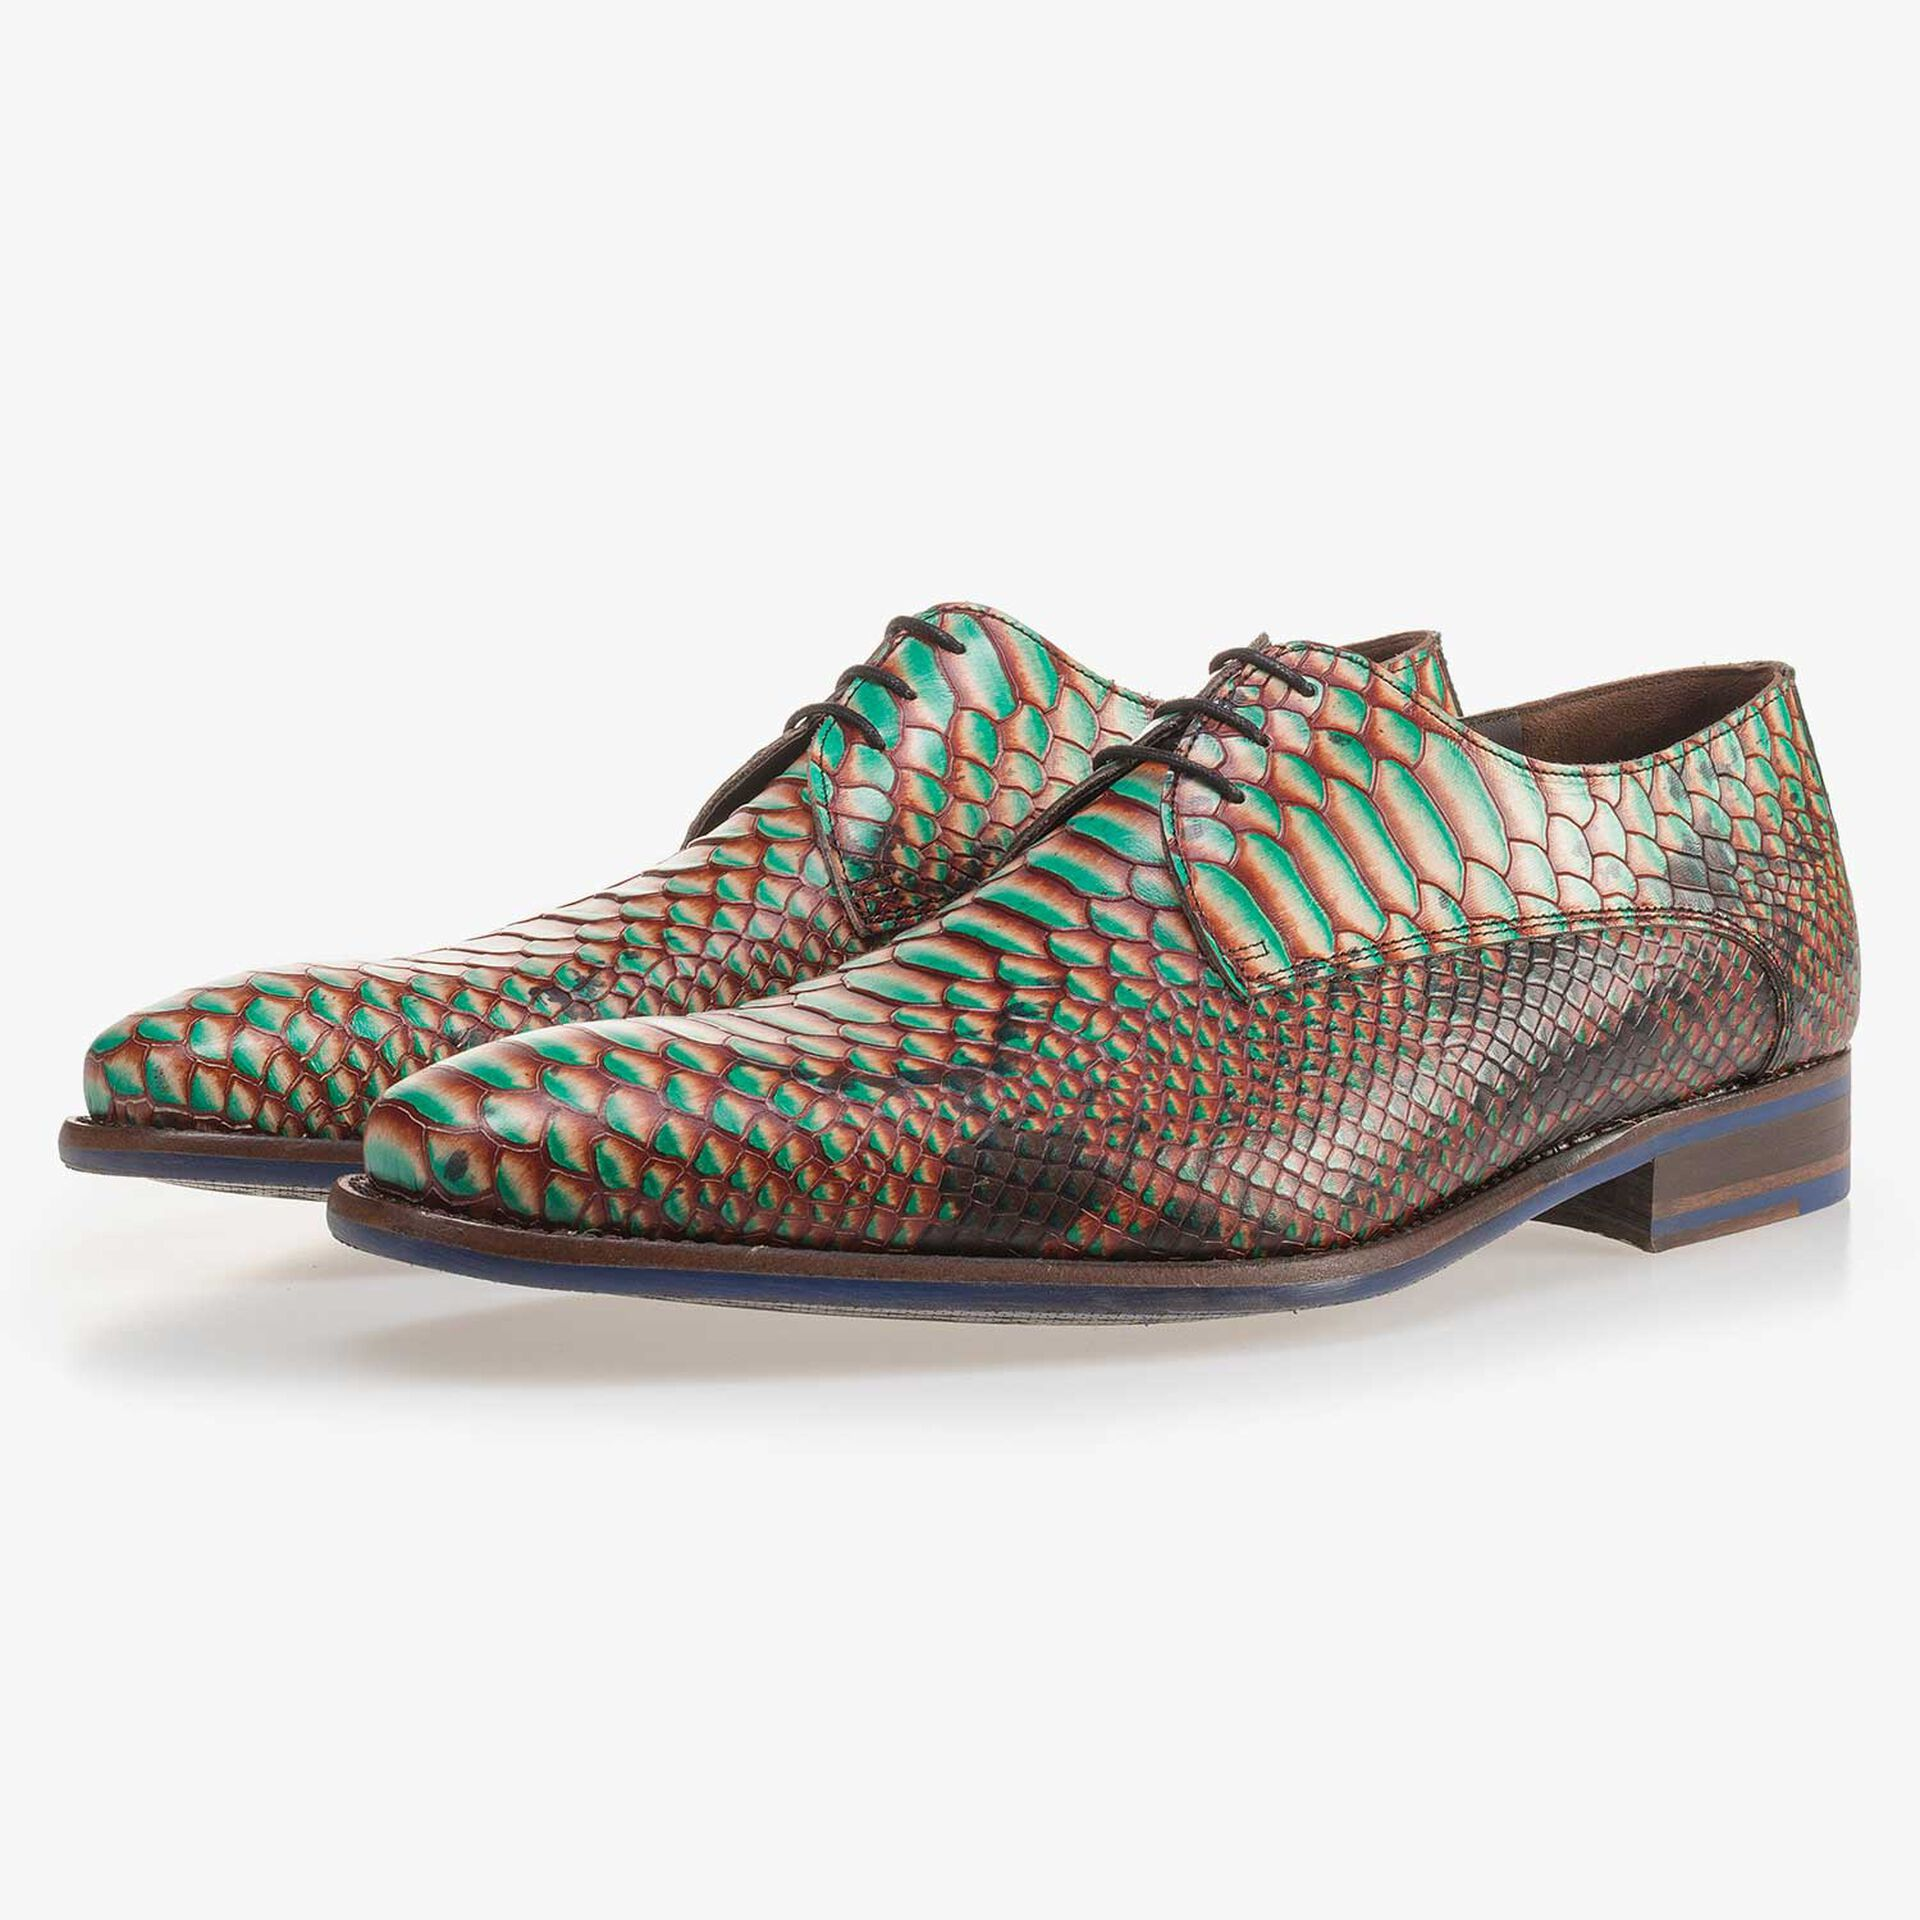 Green leather lace shoe with a snake print